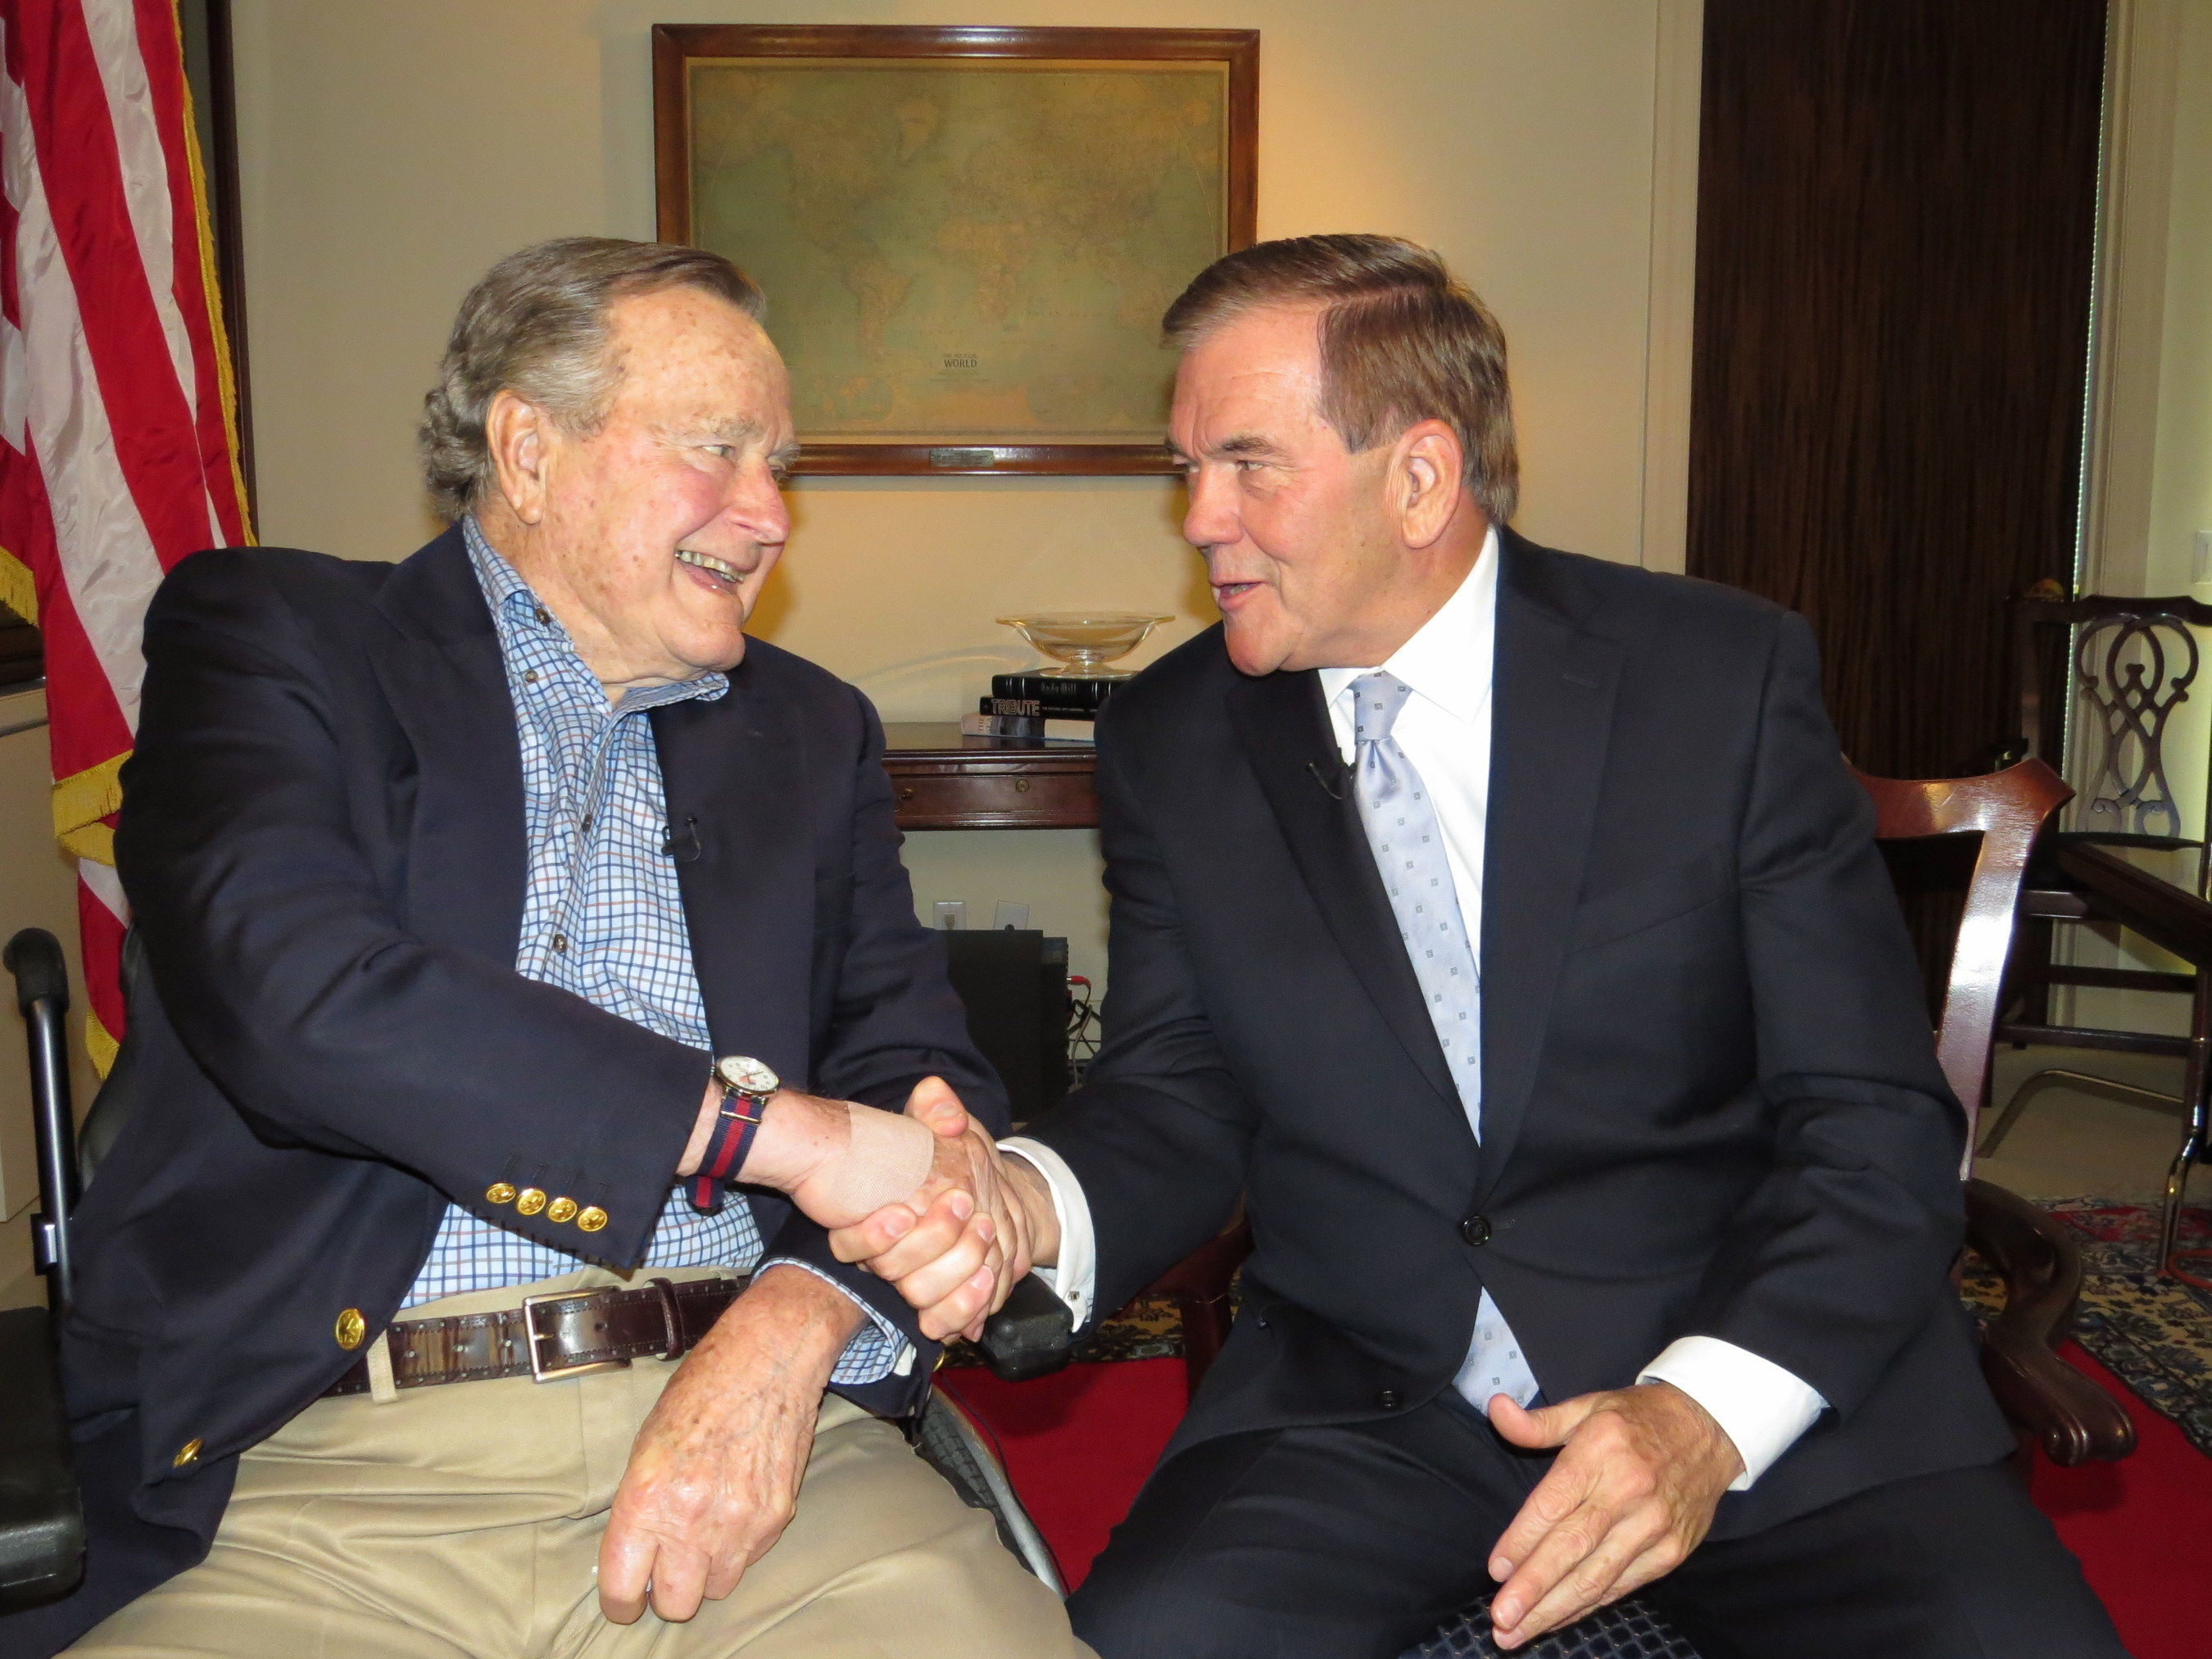 President George H.W. Bush, Honorary Chairman of the National Organization on Disability, shaking hands with Tom Ridge, Chairman of the National Organization on Disability.